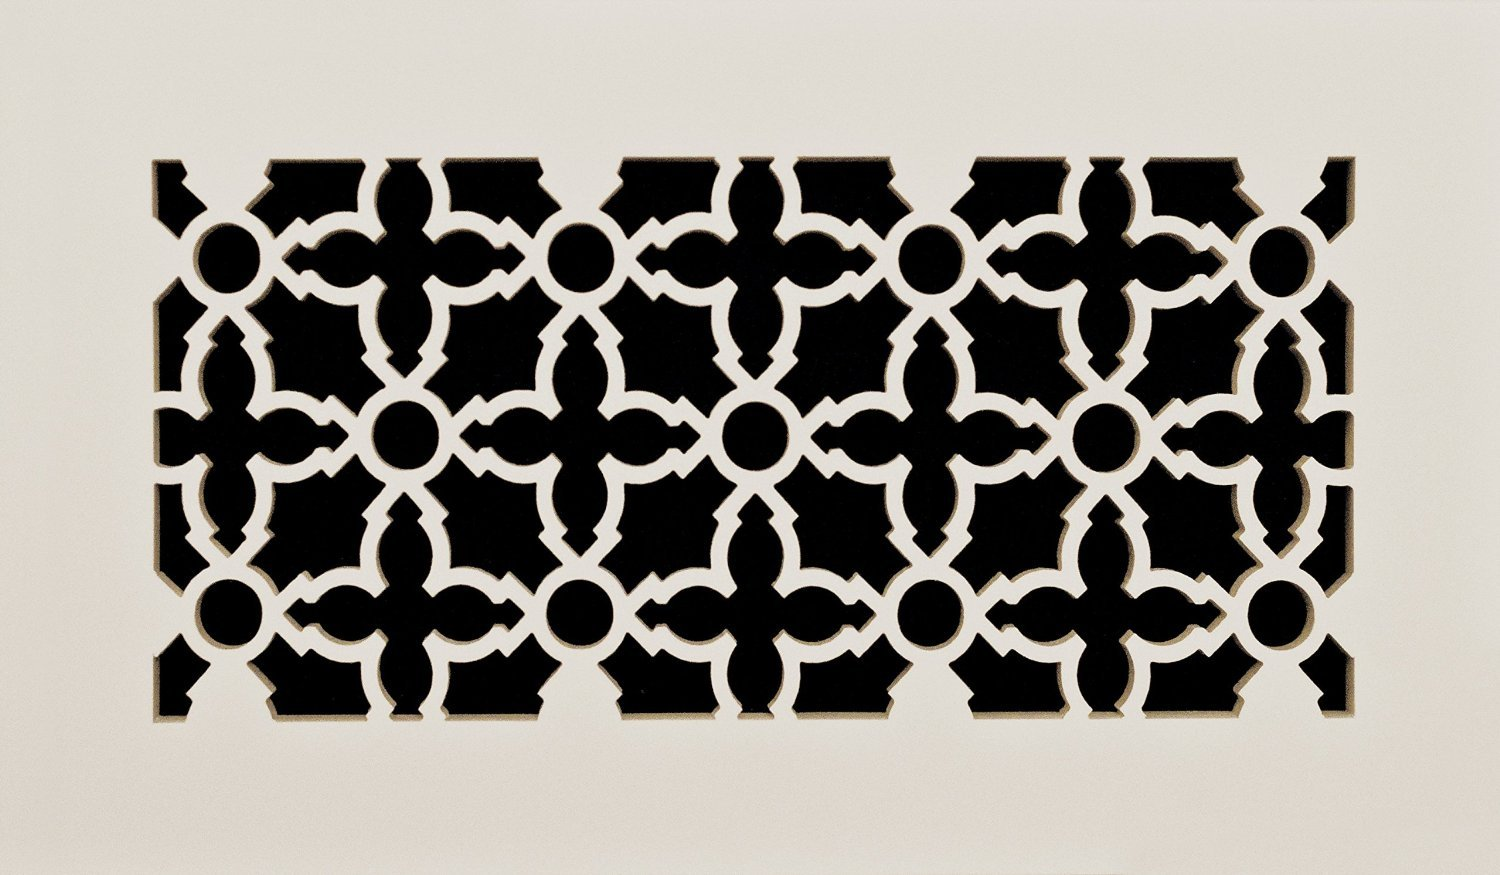 Decorative Vent Cover for a 20x10 Opening. Resin Paint Grade Grille Can Be Used As Return, Supply, Foundation Vent, Register. Heritage Flat Design. 22x12 Overall Size